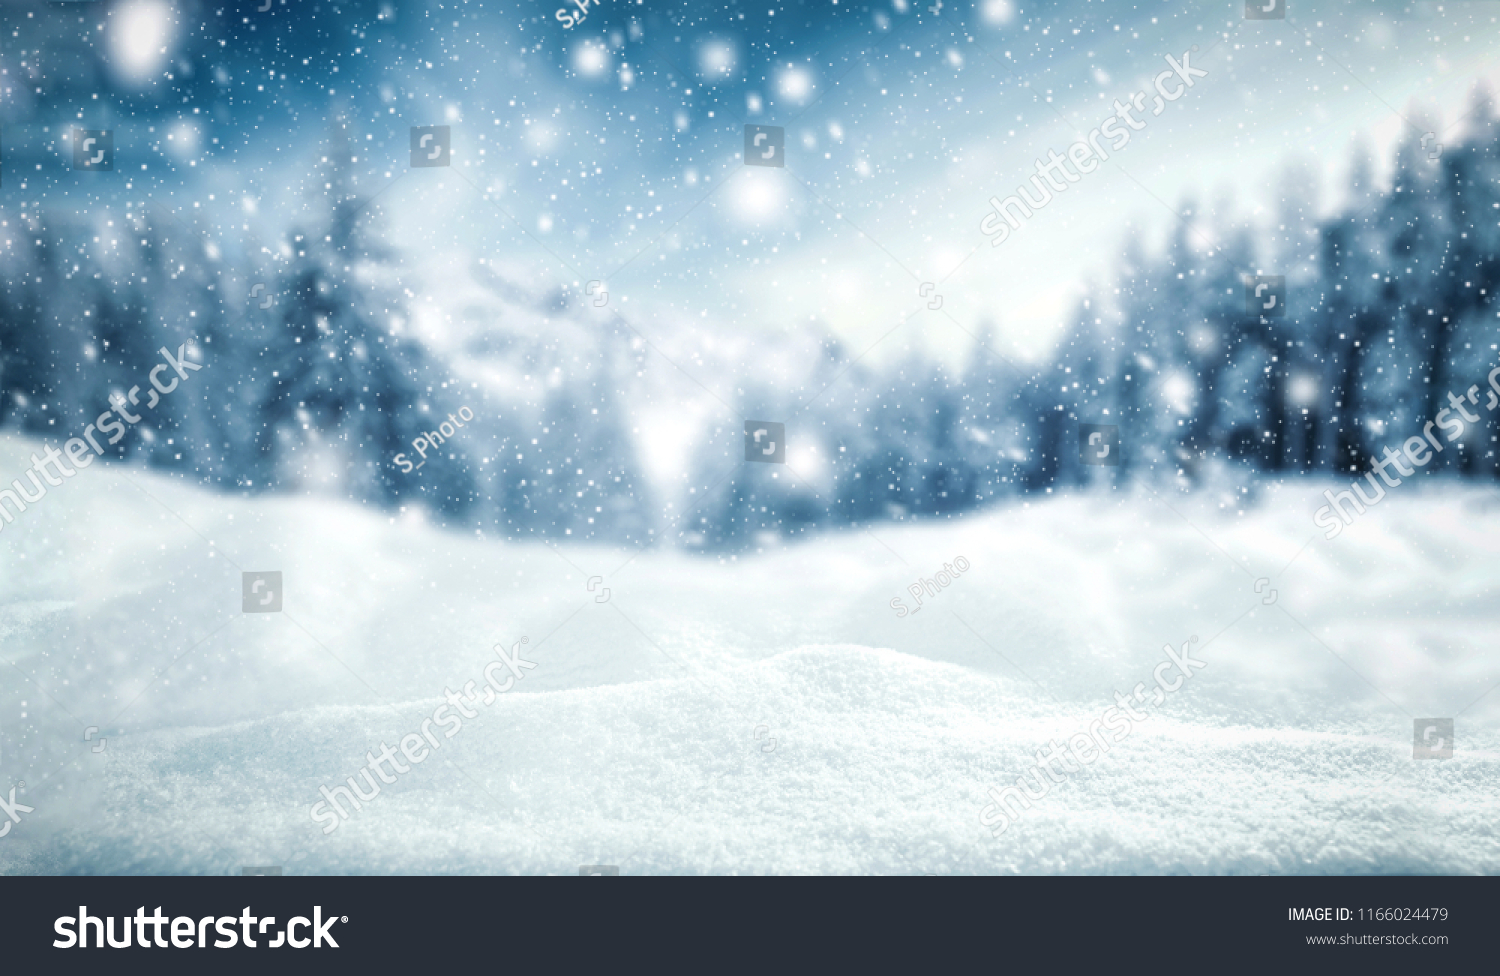 Winter background of snow and frost with free space for your decoration.  #1166024479